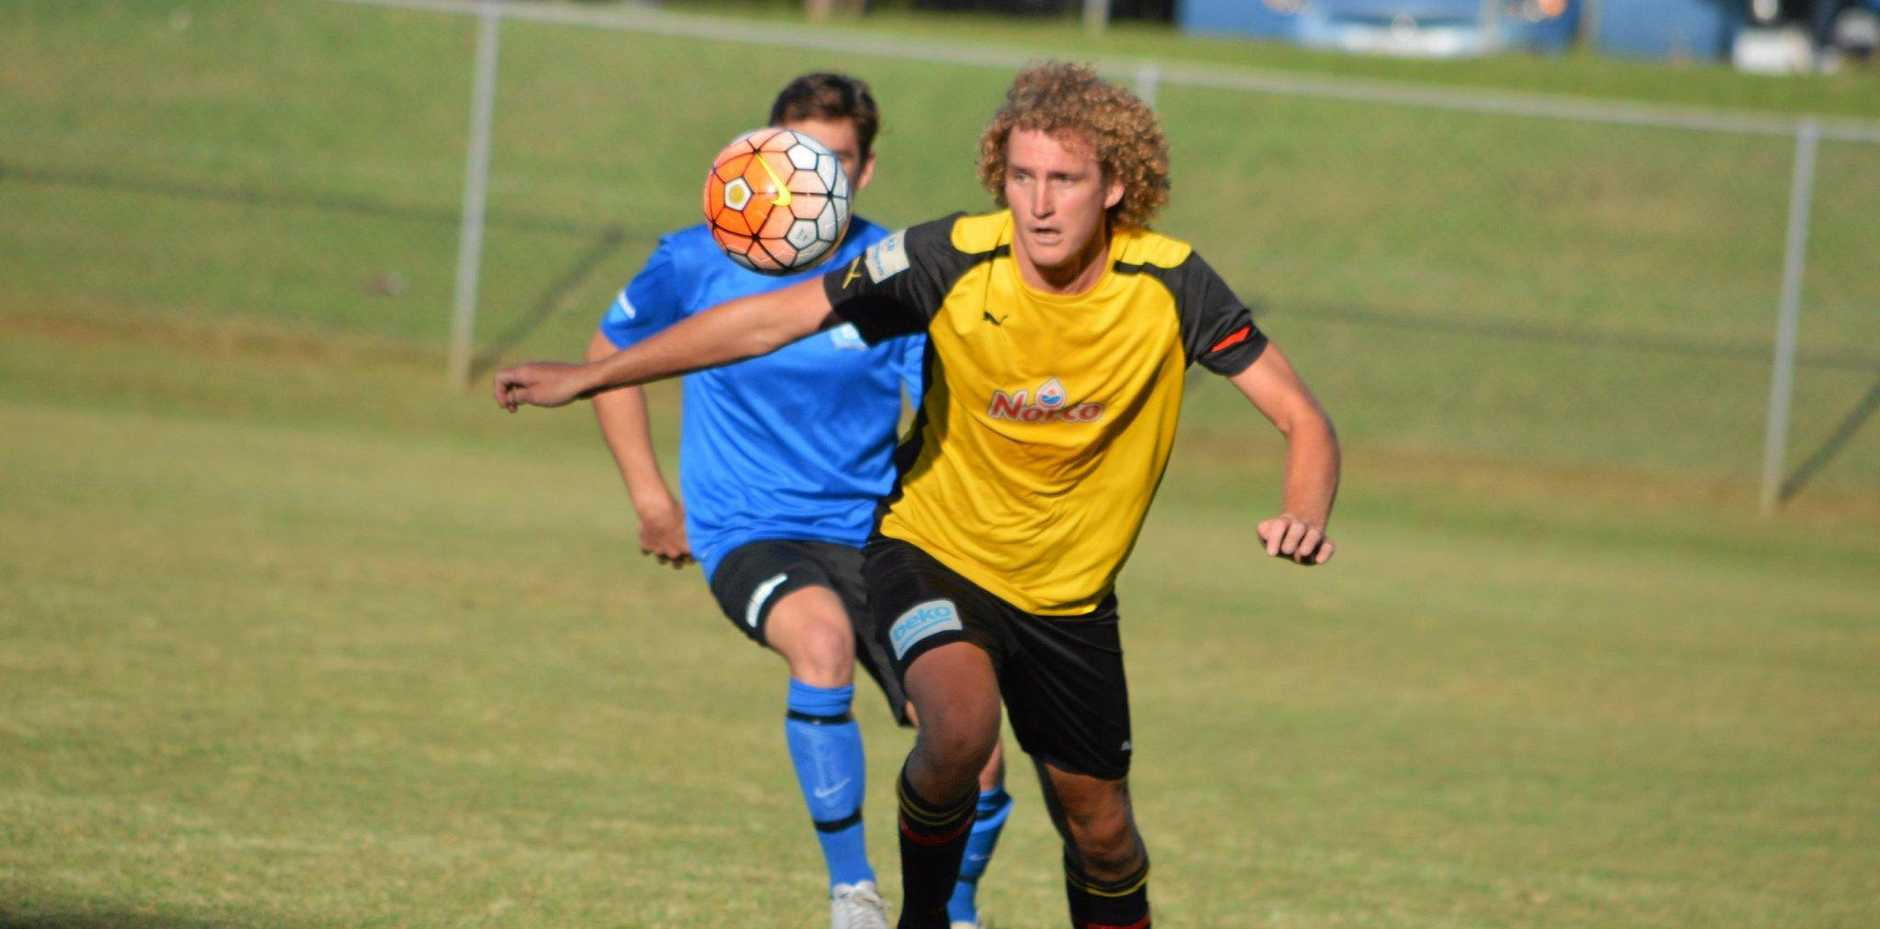 Goonellabah midfielder Kurt Stephens, who was in good form against Bangalow last Saturday as the Hornets came away with a 2-1 win. PHOTO: STEVE MACKNEY